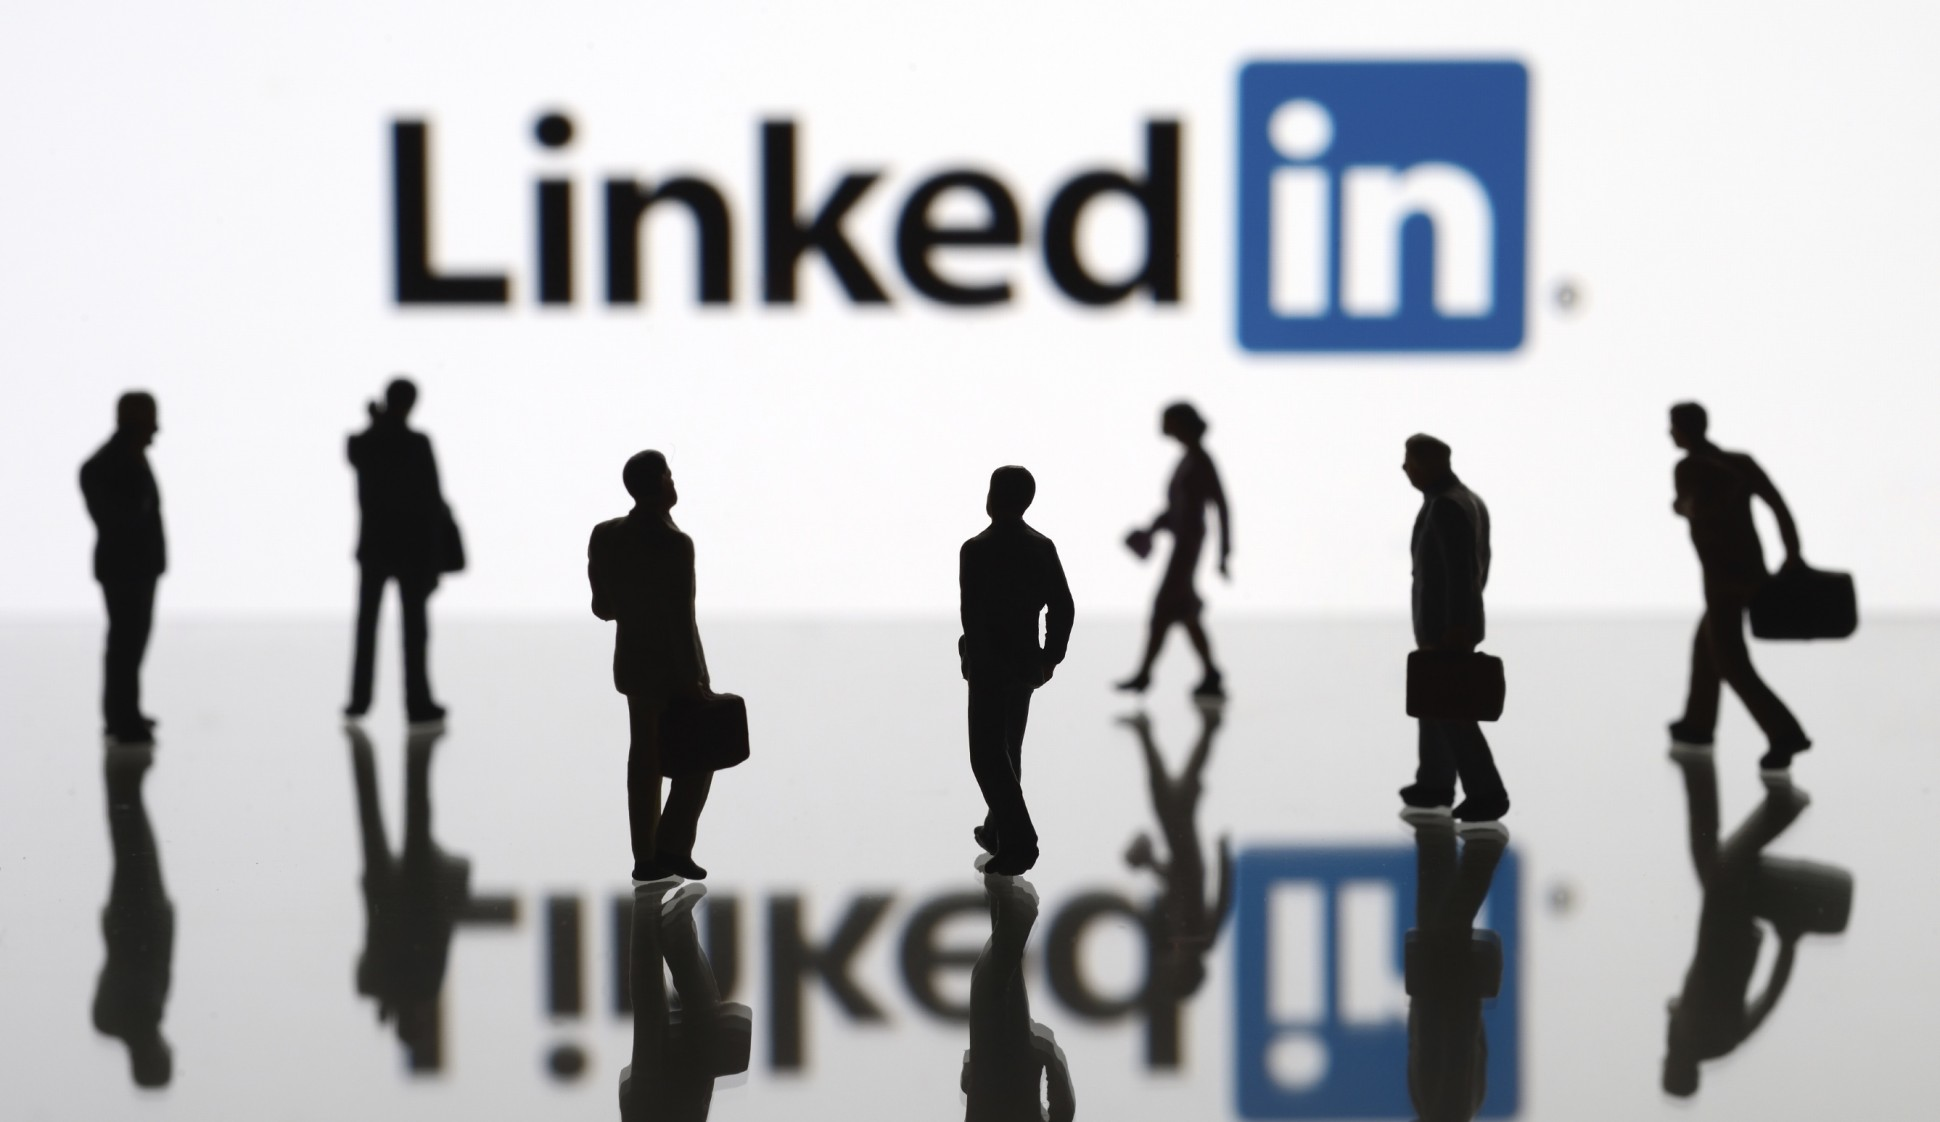 4. LinkedIn - Flourishing your Network